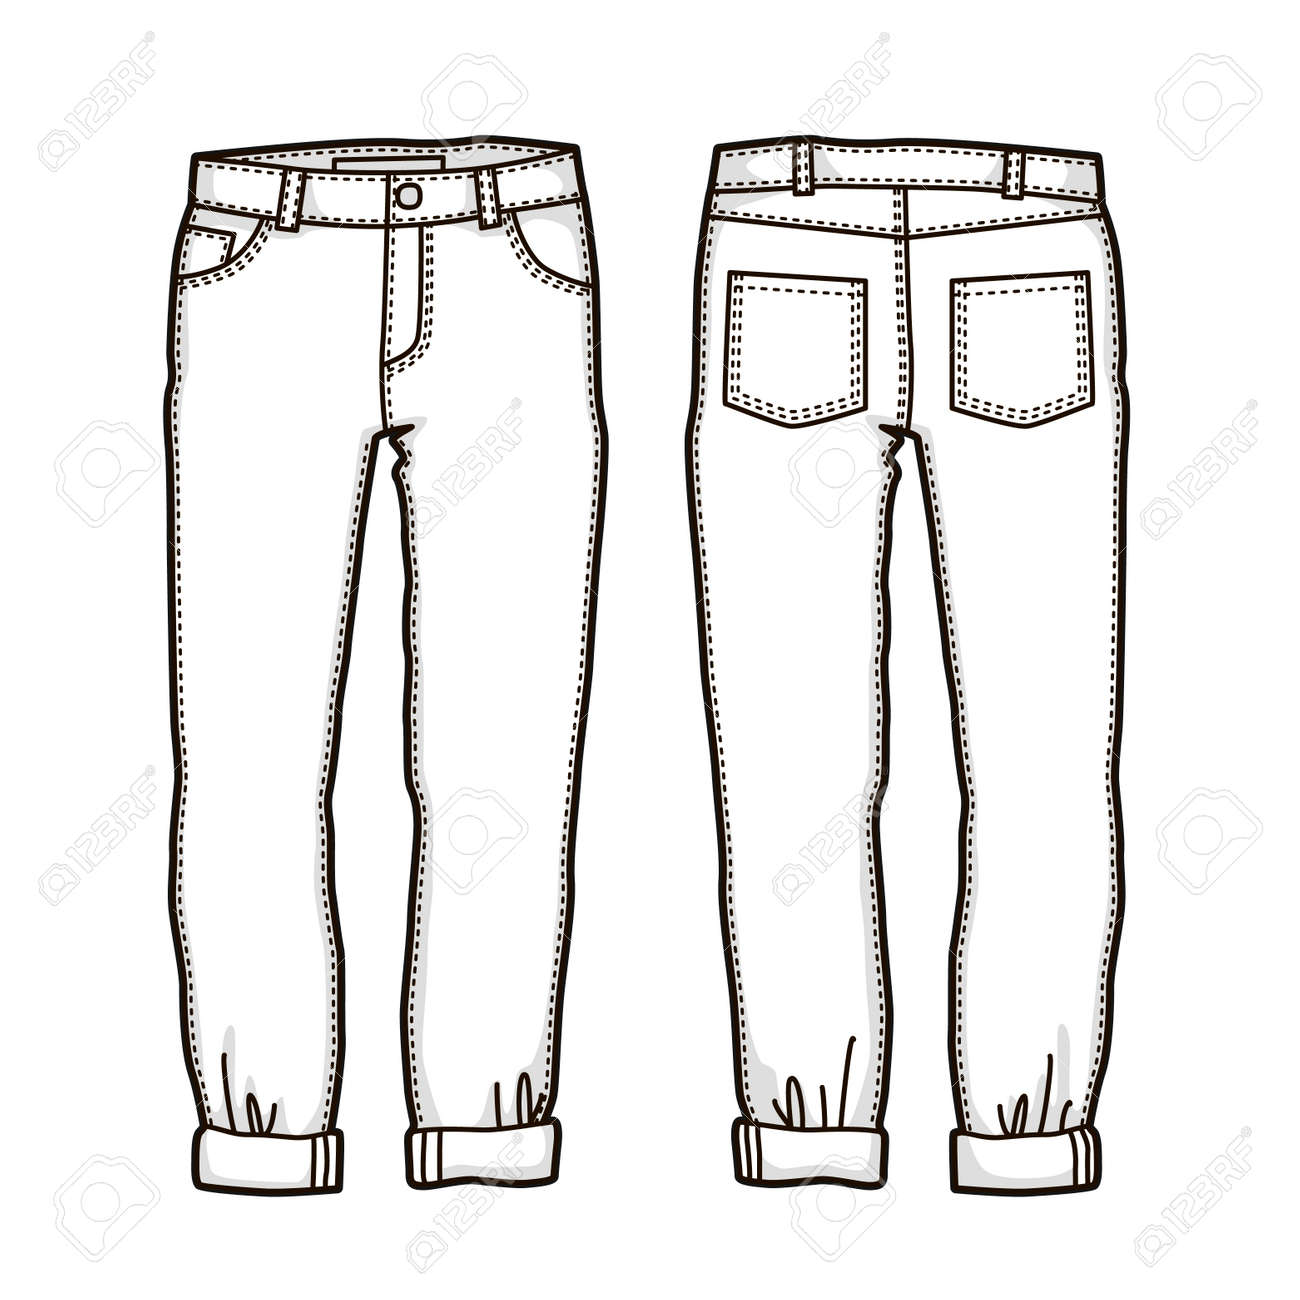 Blank Templates Of Women S Jeans In Front And Back Views Isolated Royalty Free Cliparts Vectors And Stock Illustration Image 97045583